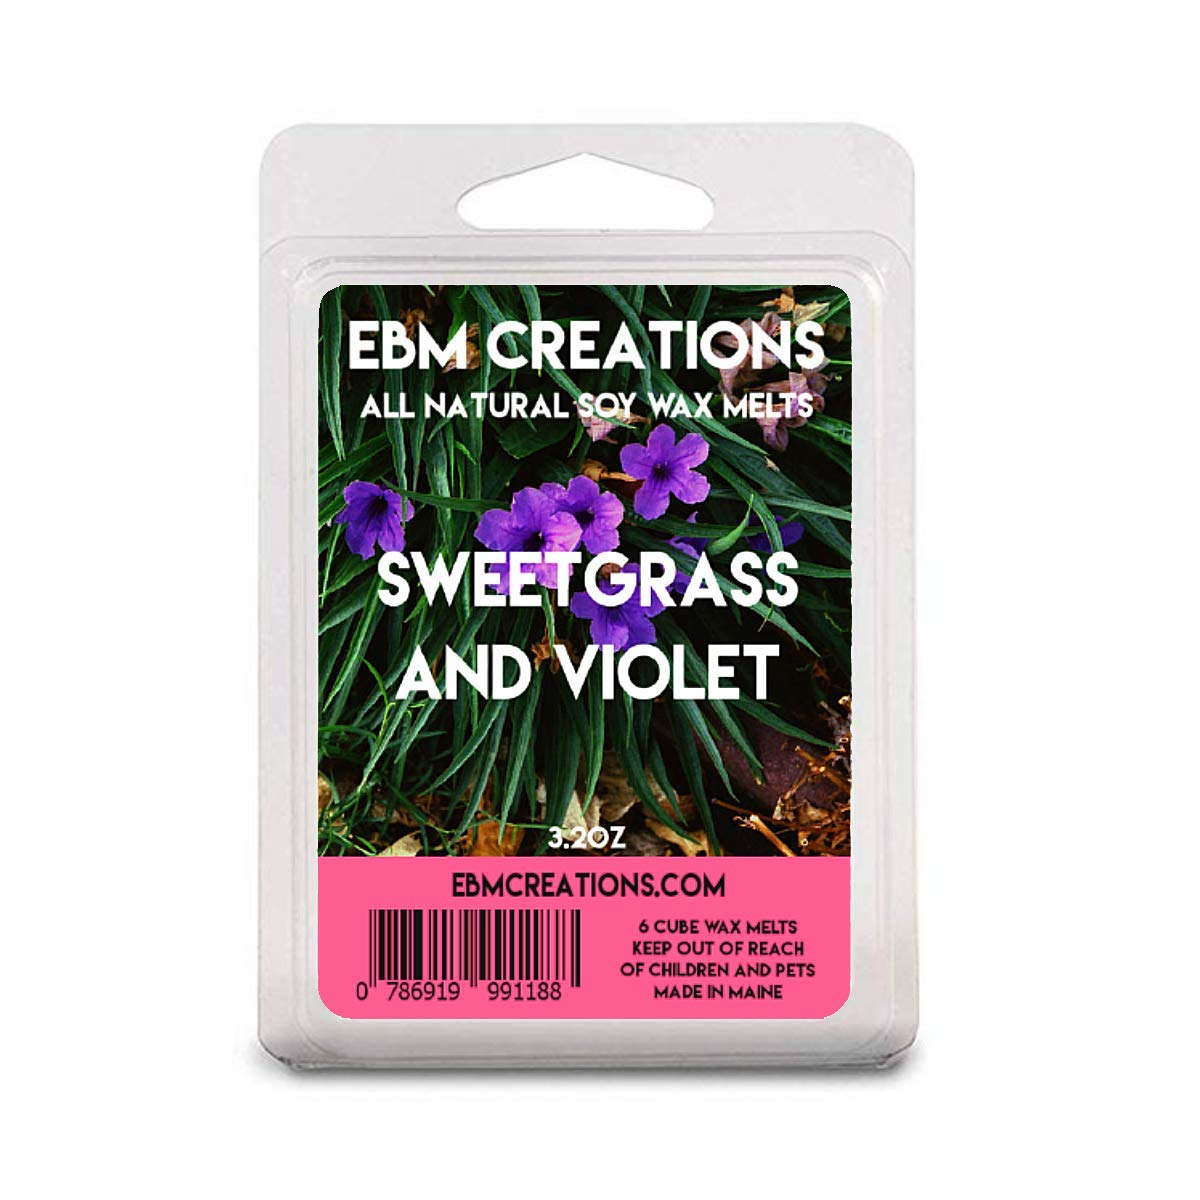 Sweetgrass /& Violet Soy Wax 3oz Clamshell Hand-poured Artisan Wax All Natural Sustainable Paraffin-free Soy Wax